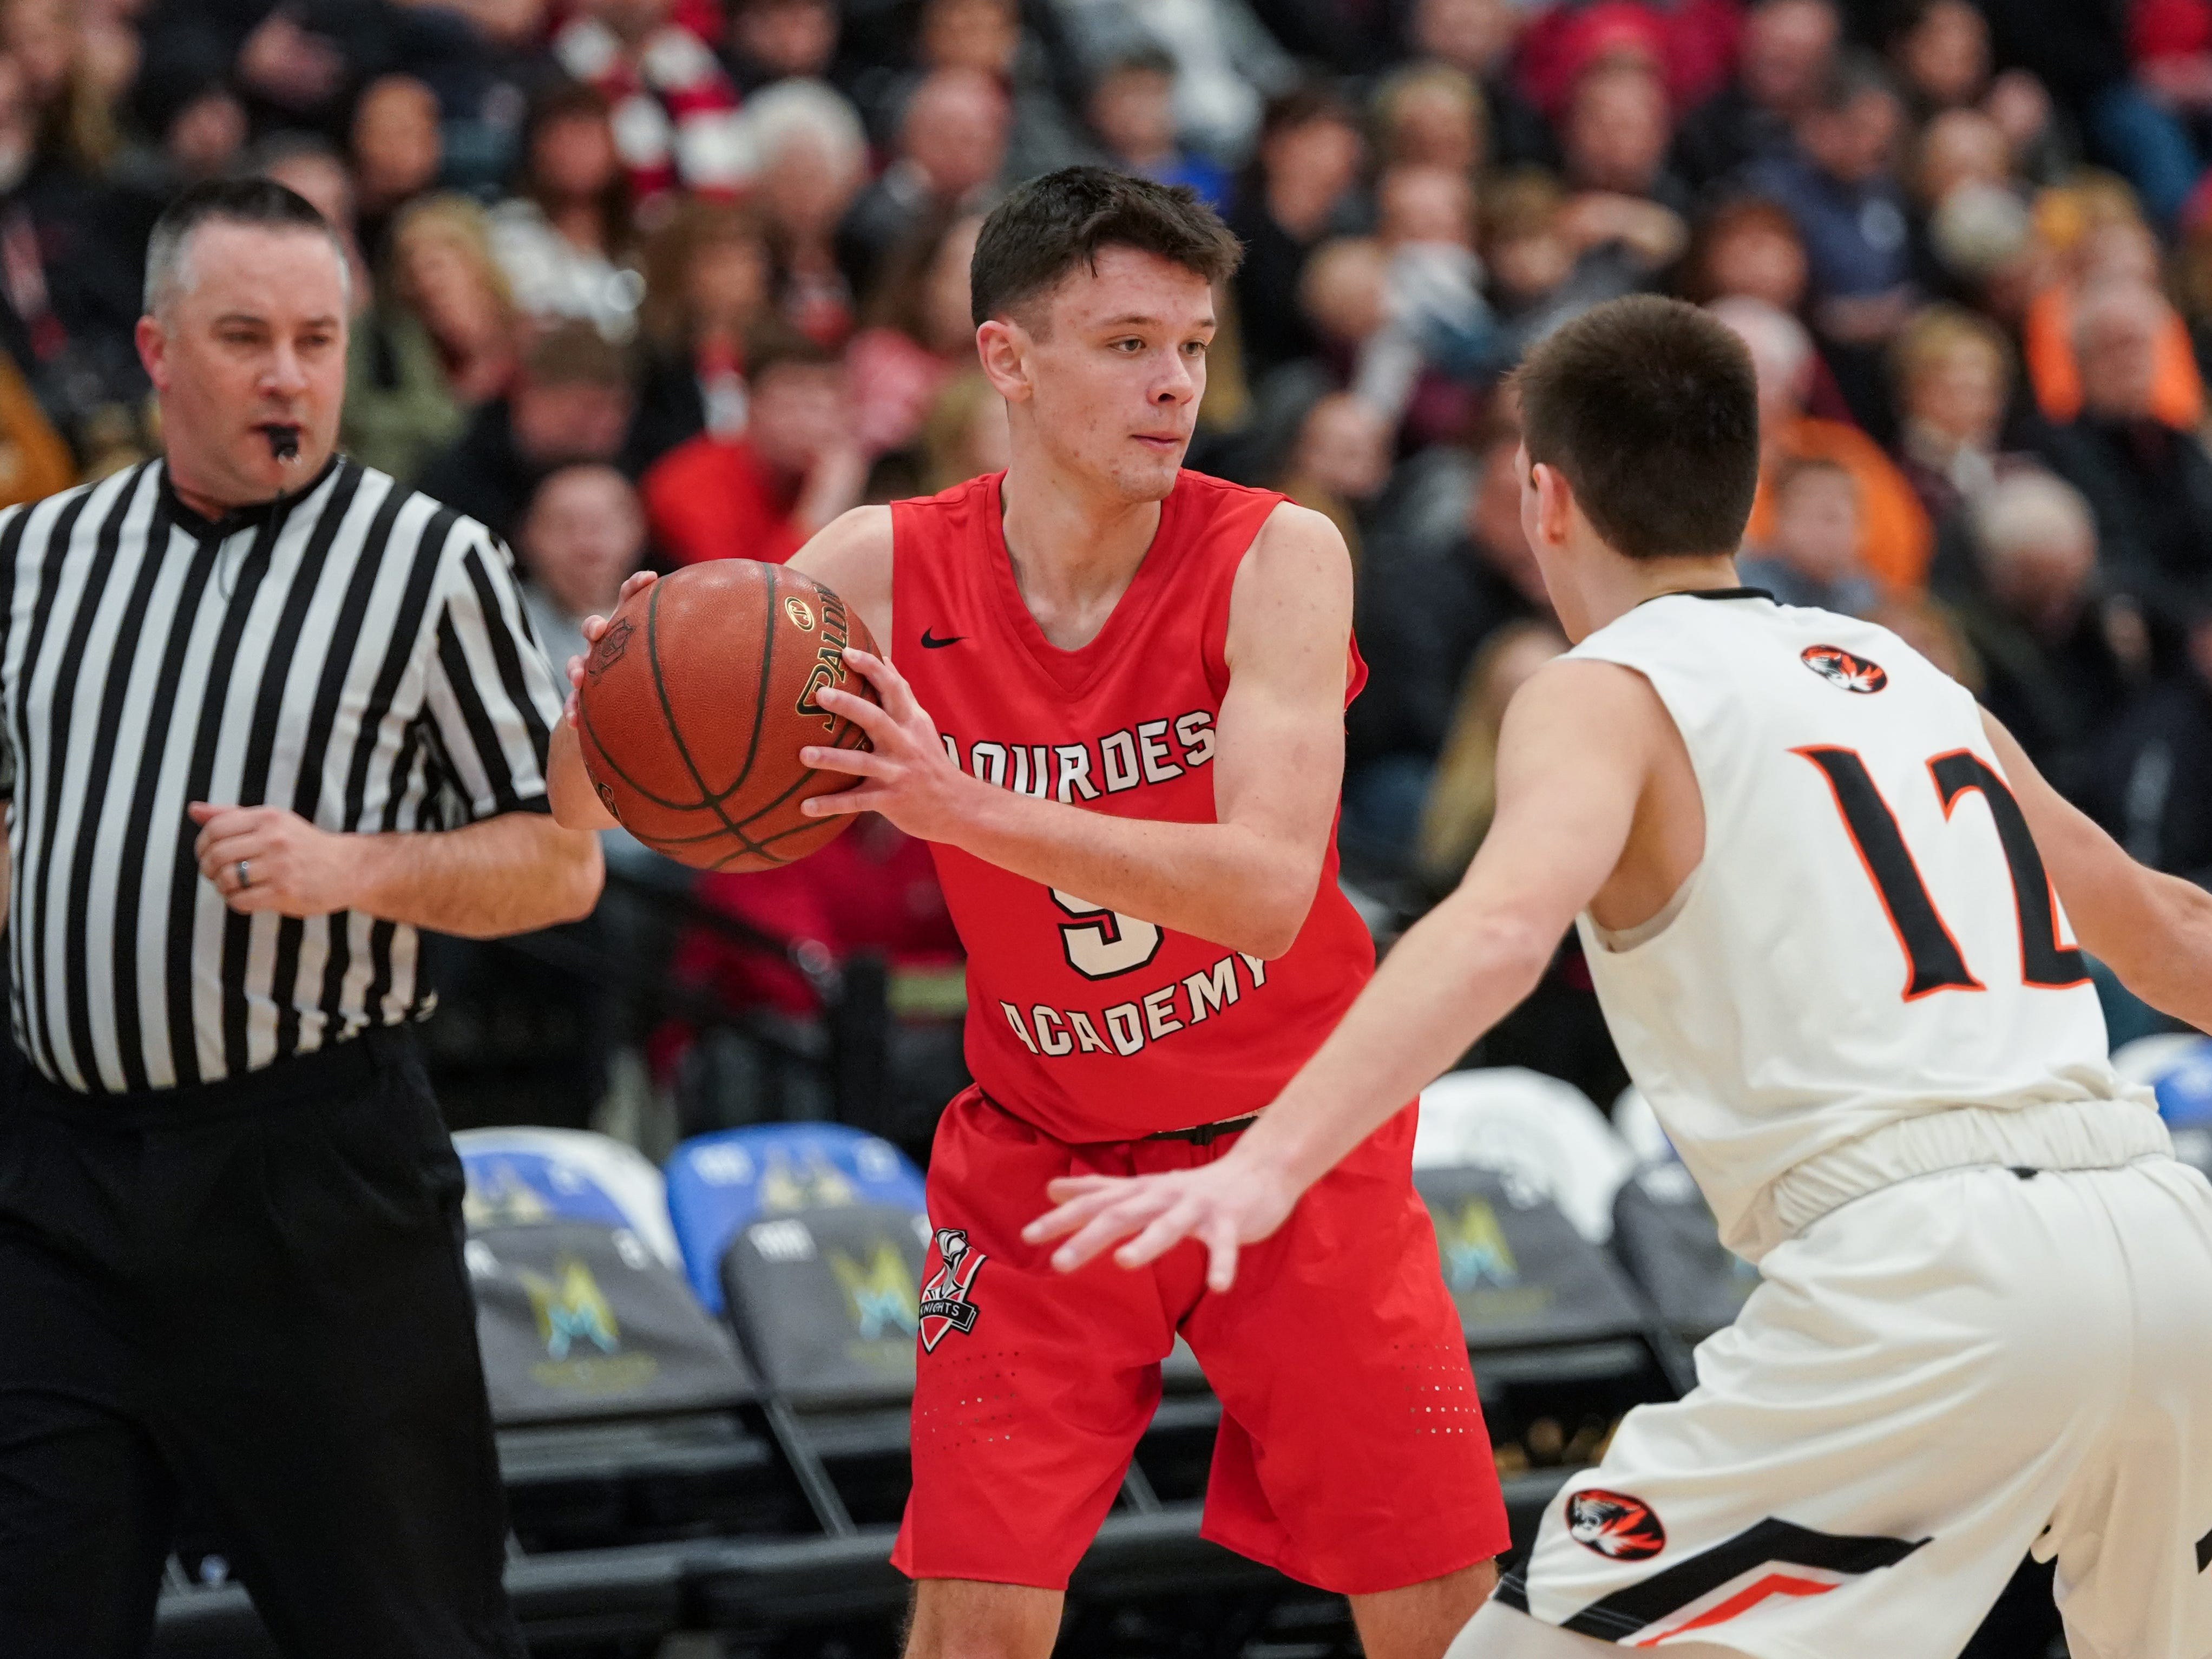 Jack McKellips (5) of Lourdes looks for room to pass. The Lourdes Knights and Ripon Tigers met in a non-conference basketball game Saturday afternoon, December 29, 2018 at the Menomonie Nation Arena in Oshkosh.